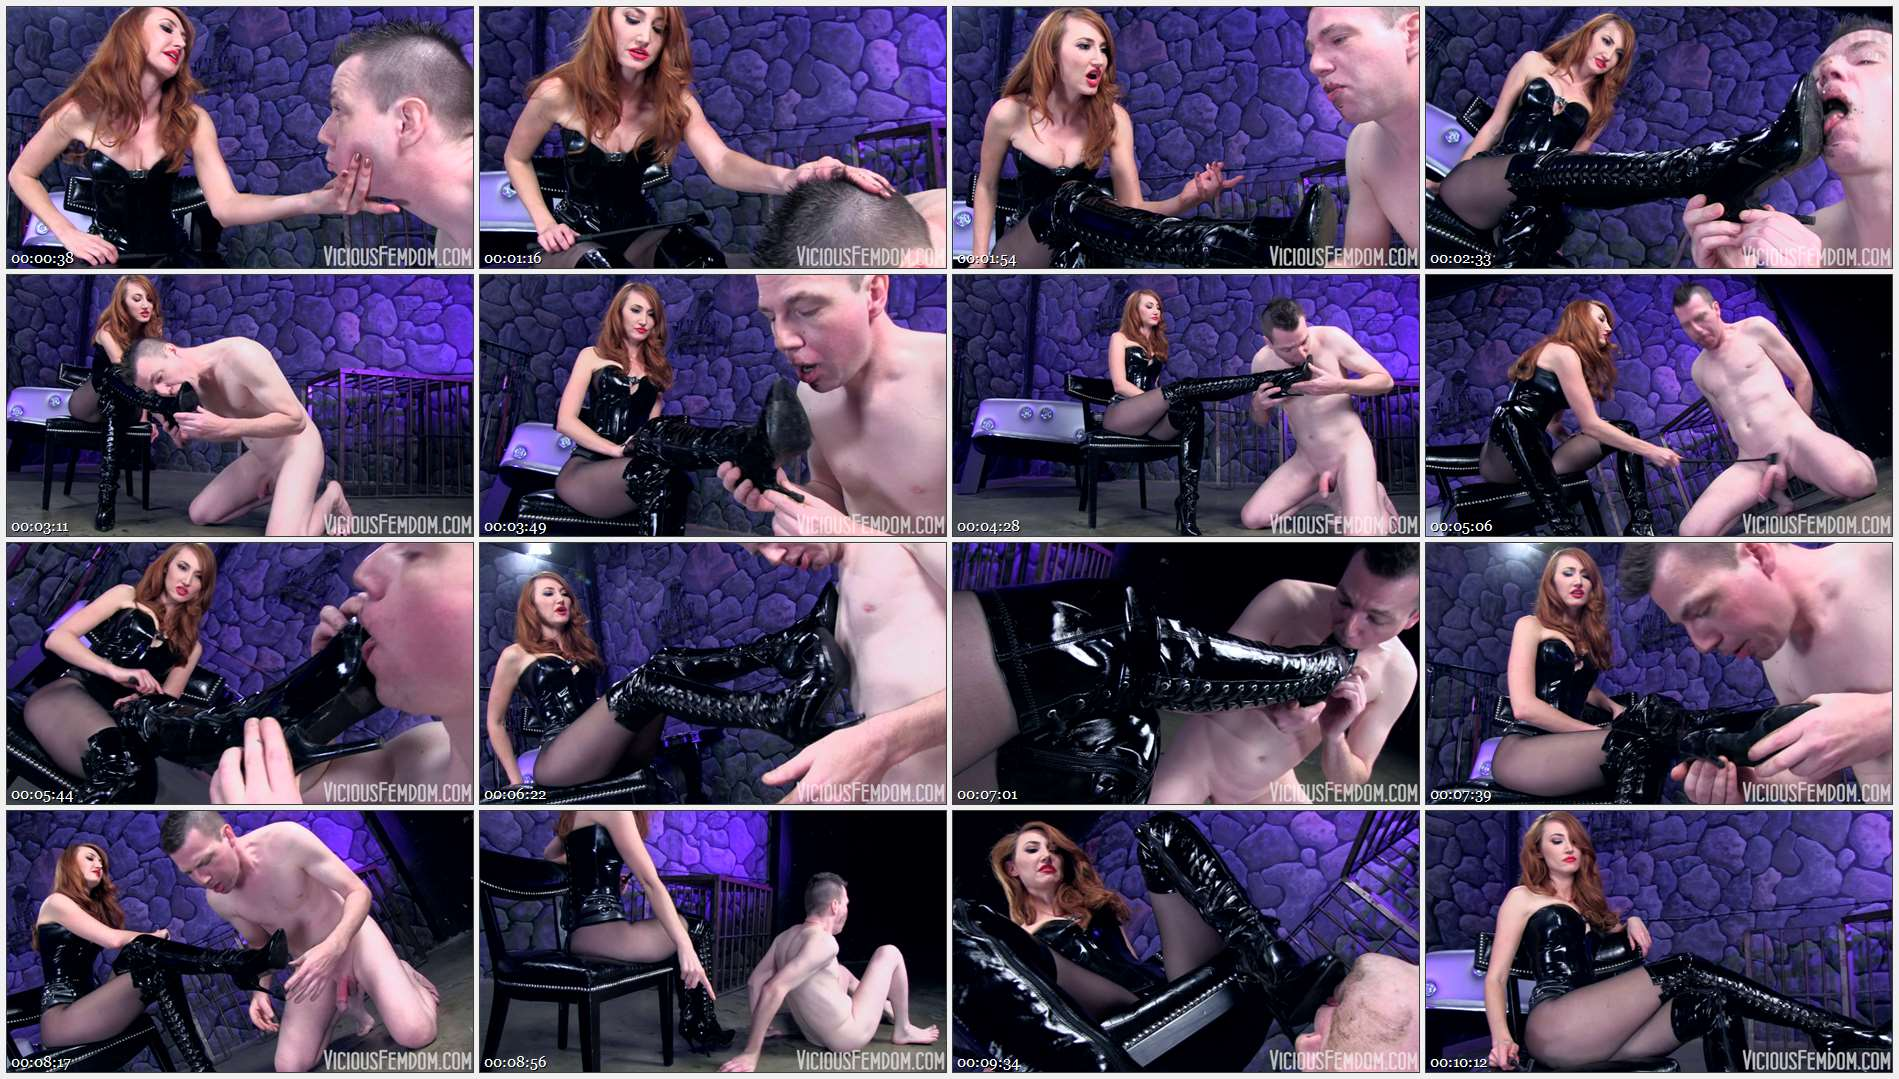 Kendra James – Disgusting boot pig